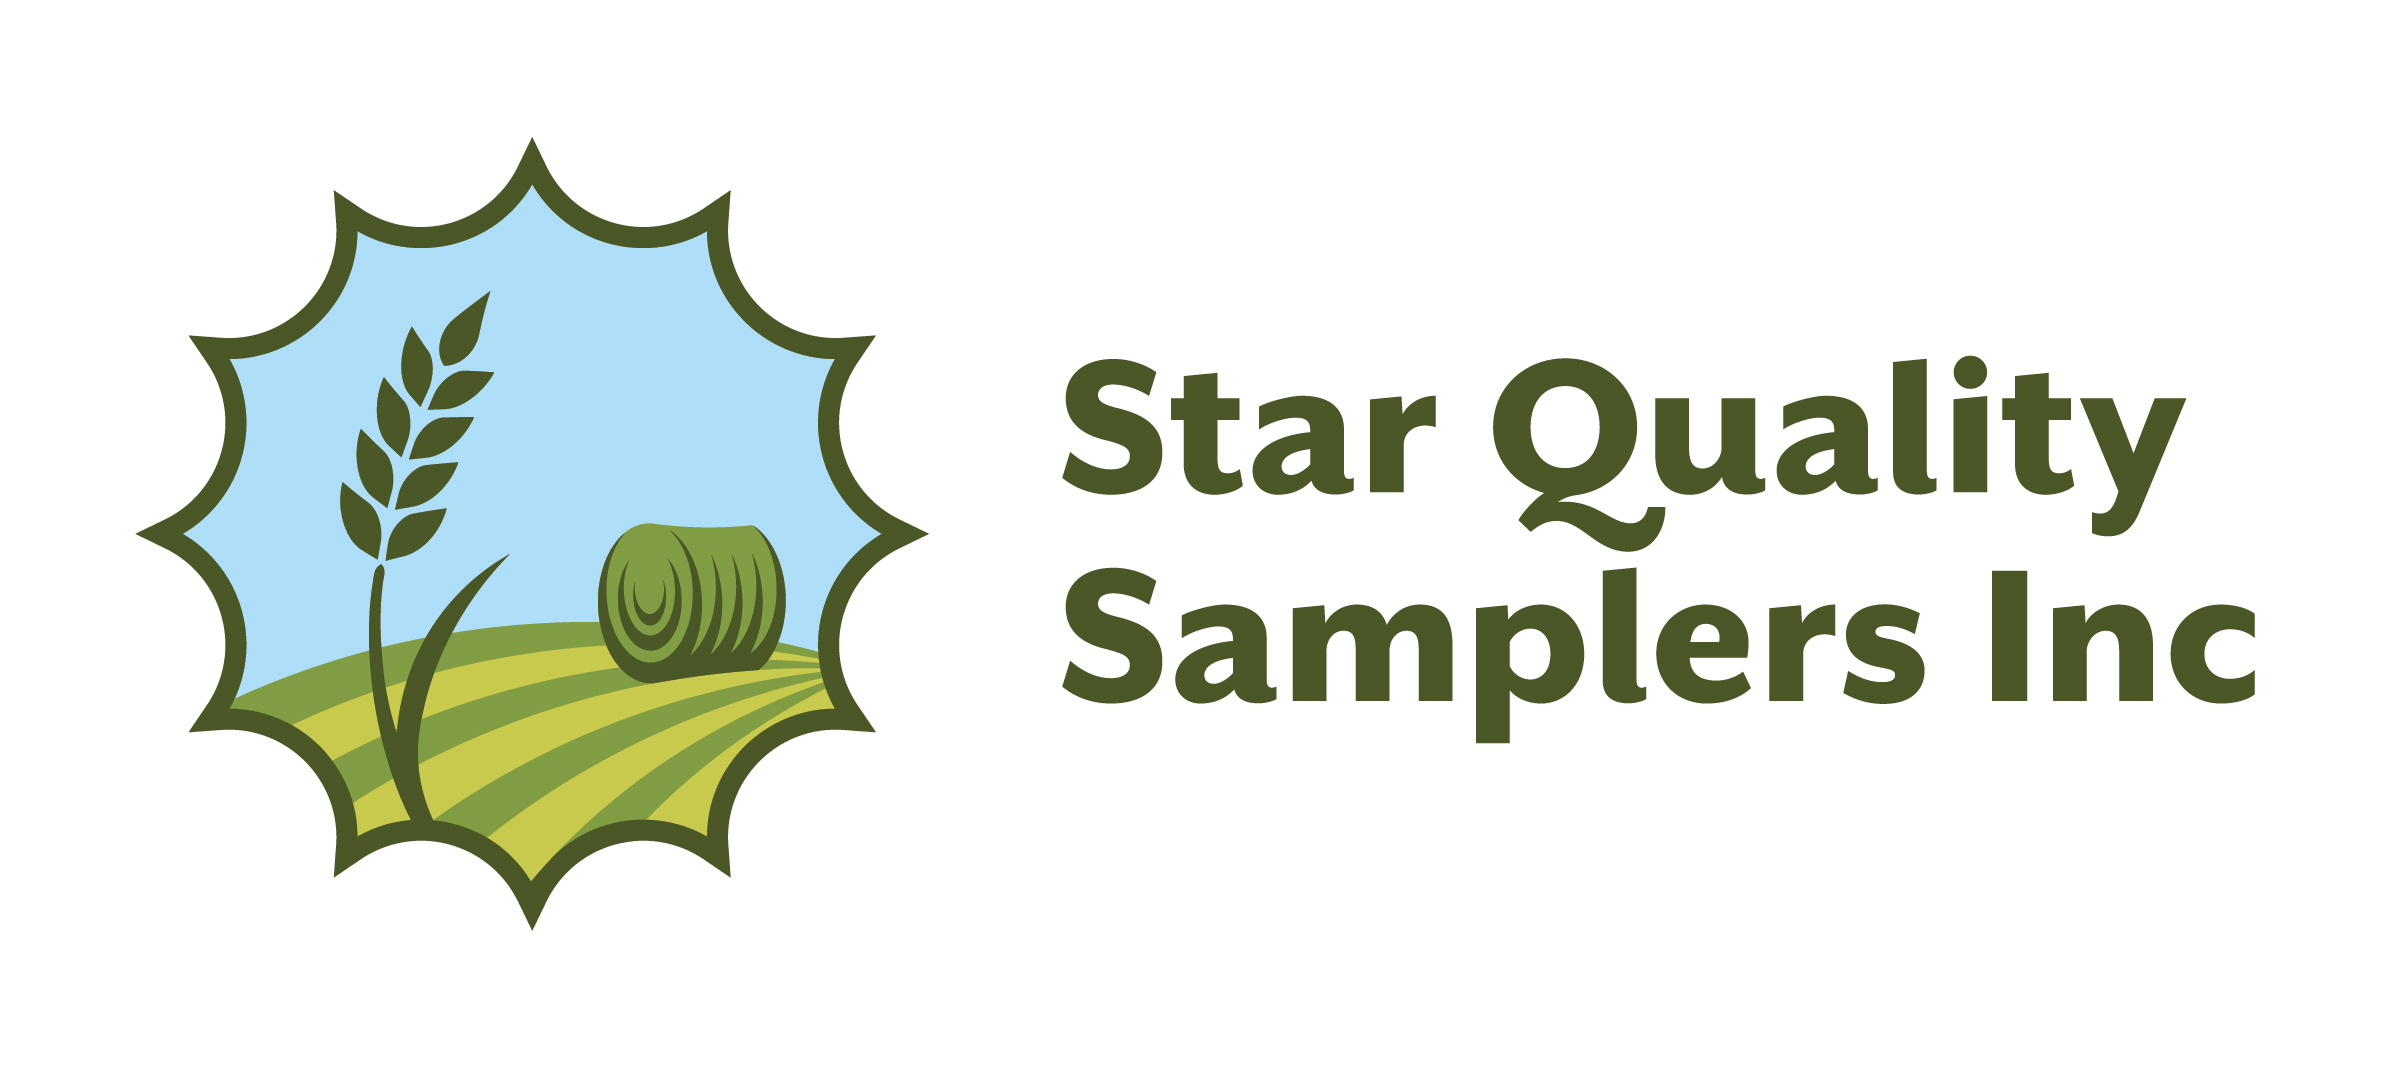 Star Quality Samplers Inc.